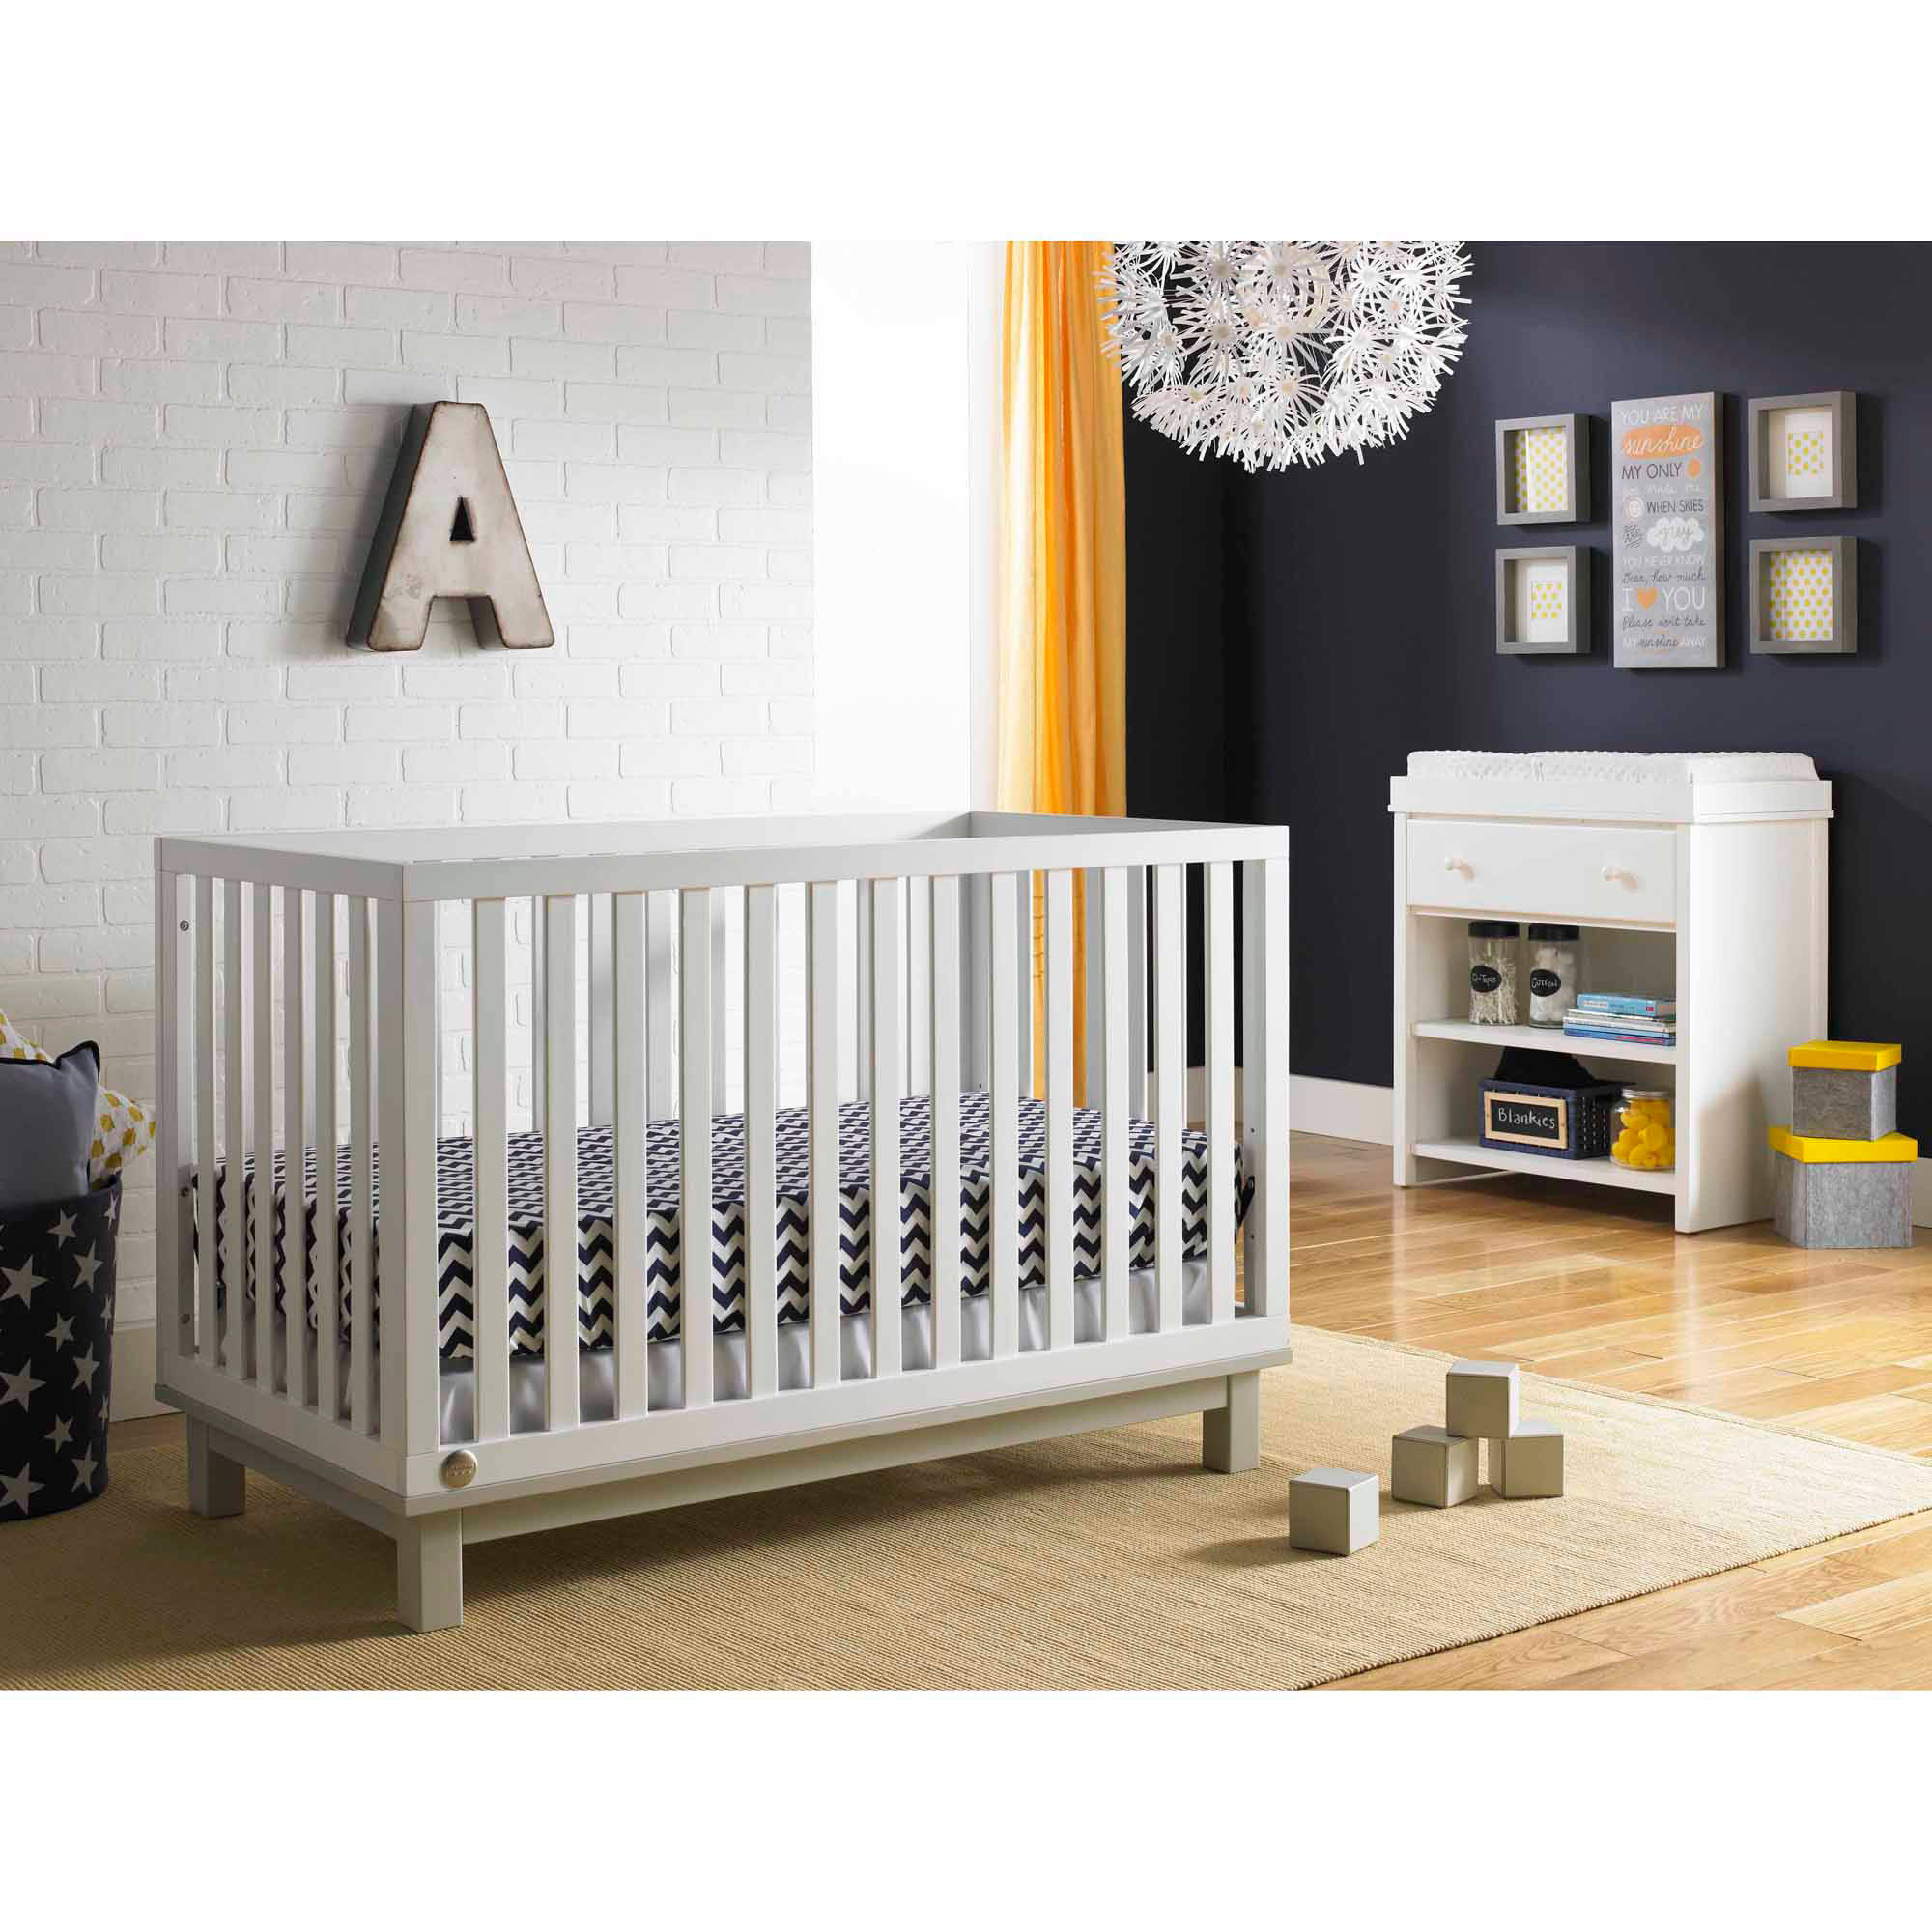 Fisher-Price Riley 3 in 1 Convertible Crib, Choose Your Finish